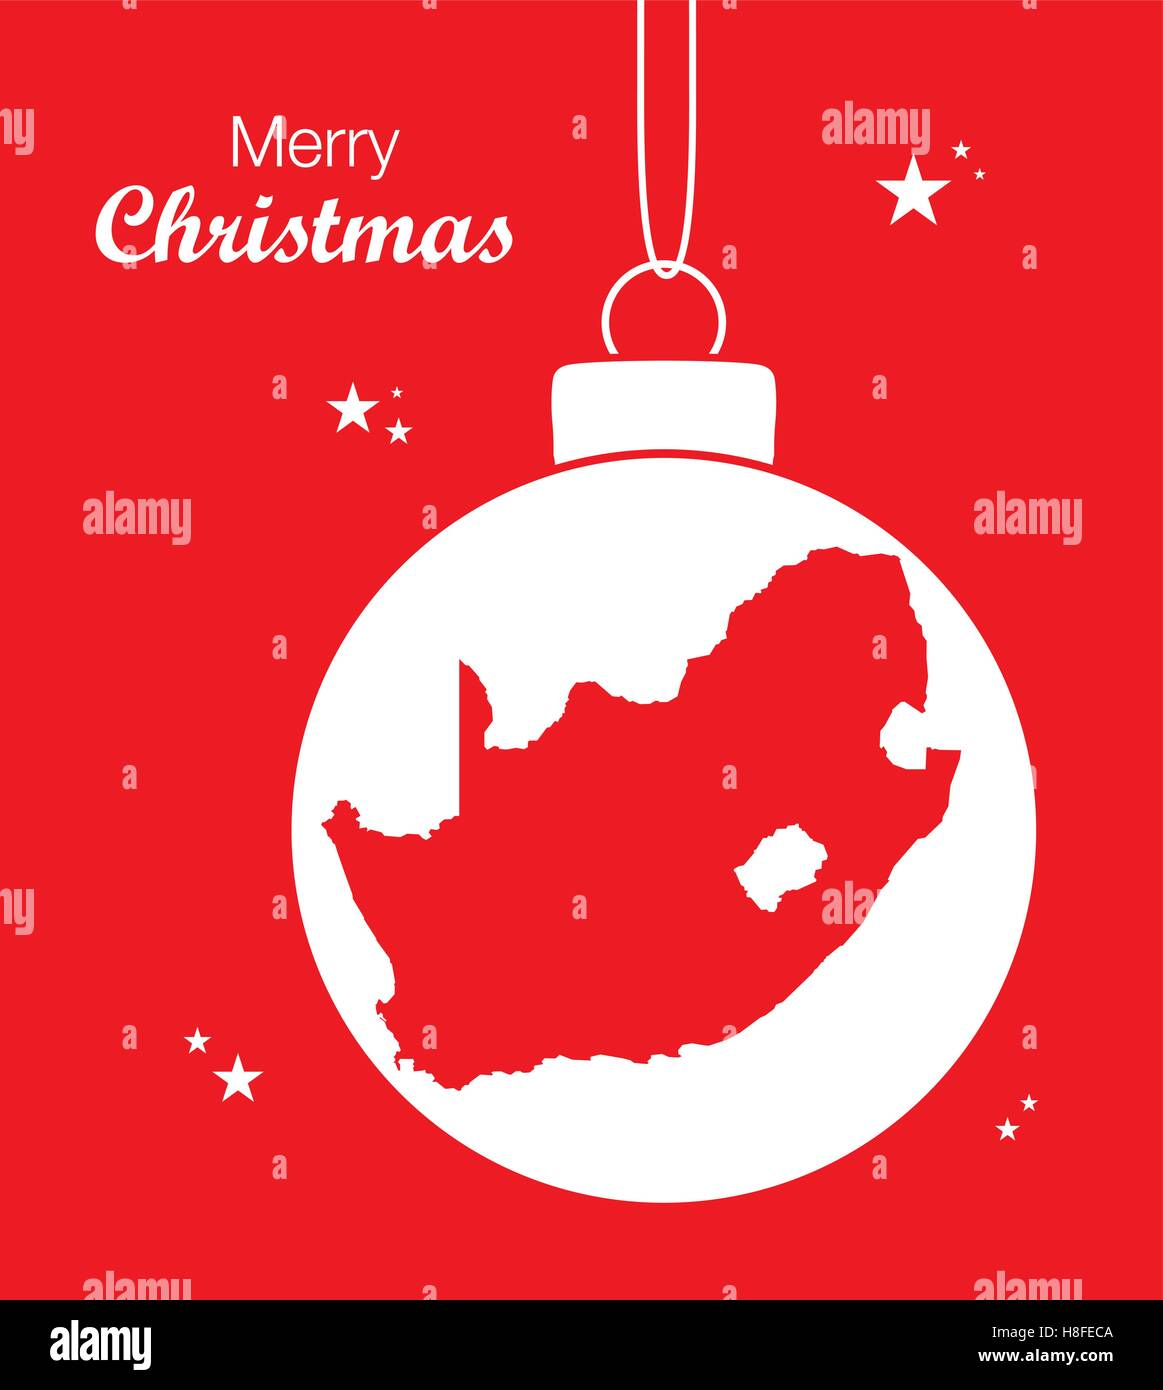 Christmas In South Africa Images.Merry Christmas Map South Africa Stock Vector Art